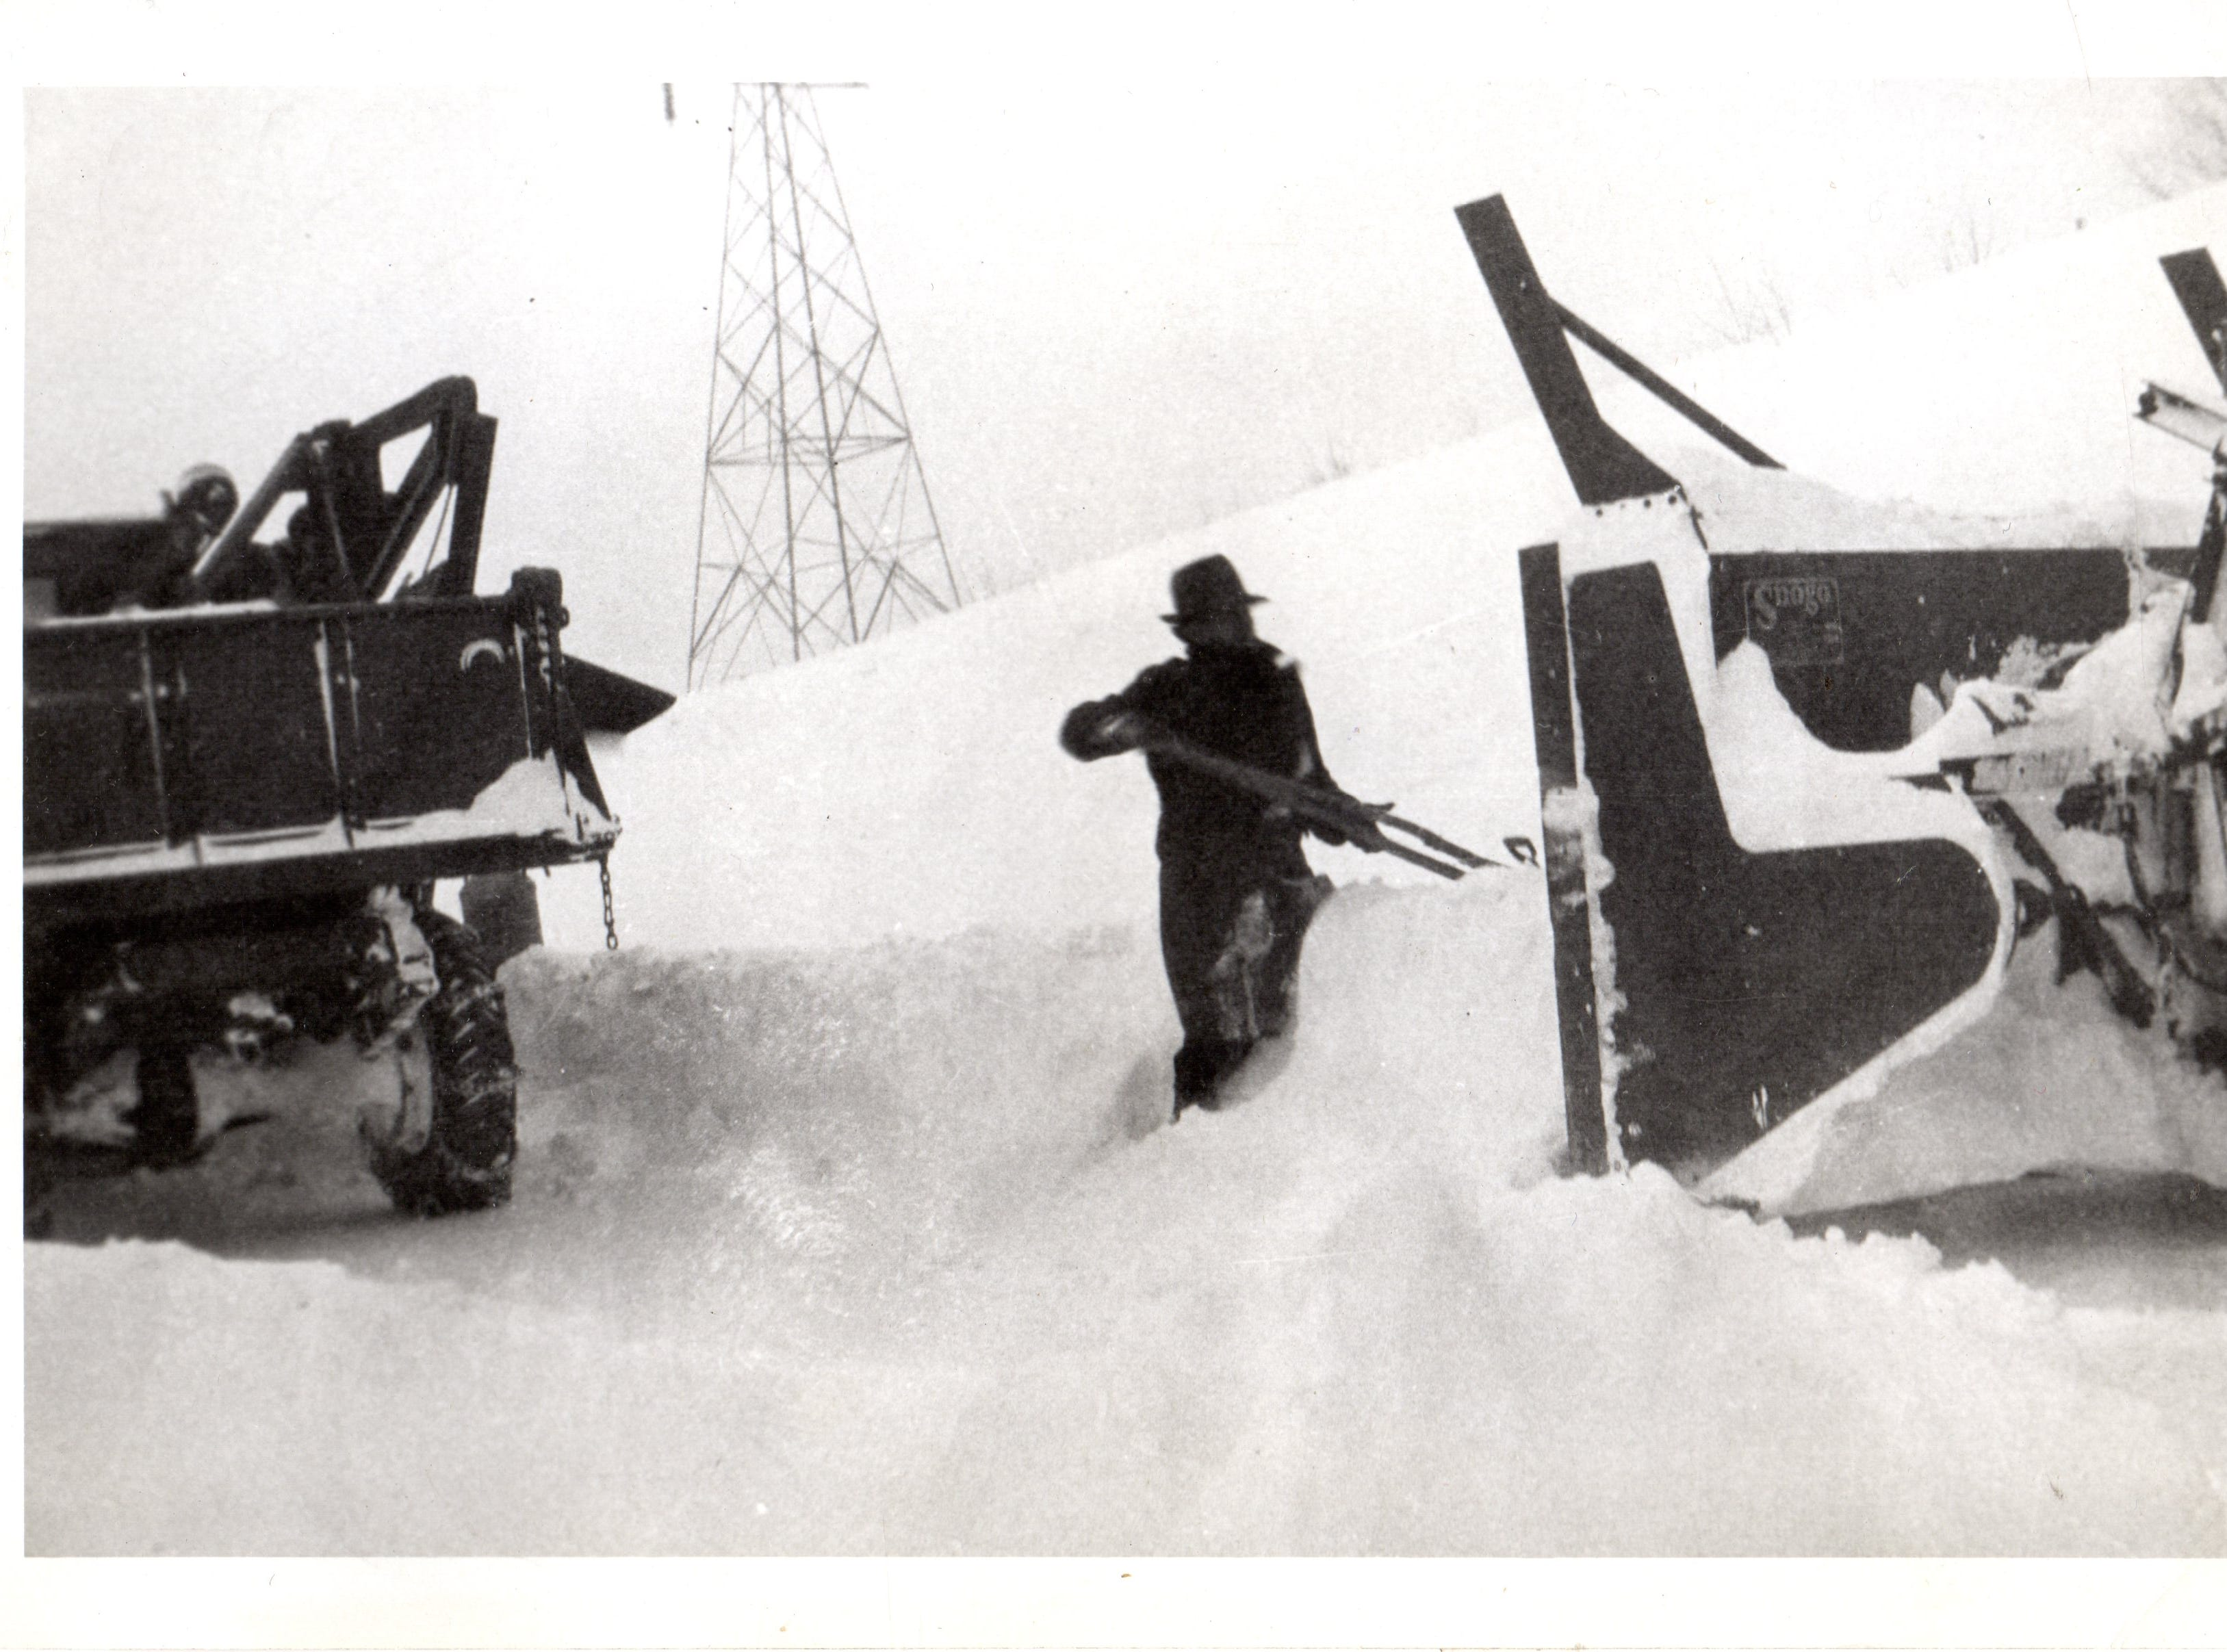 A big part of the collective identity of residents of the Hurley area revolves around the amount of snow it receives. This photo shows a man working to dig out after a massive 1938 snowstorm.